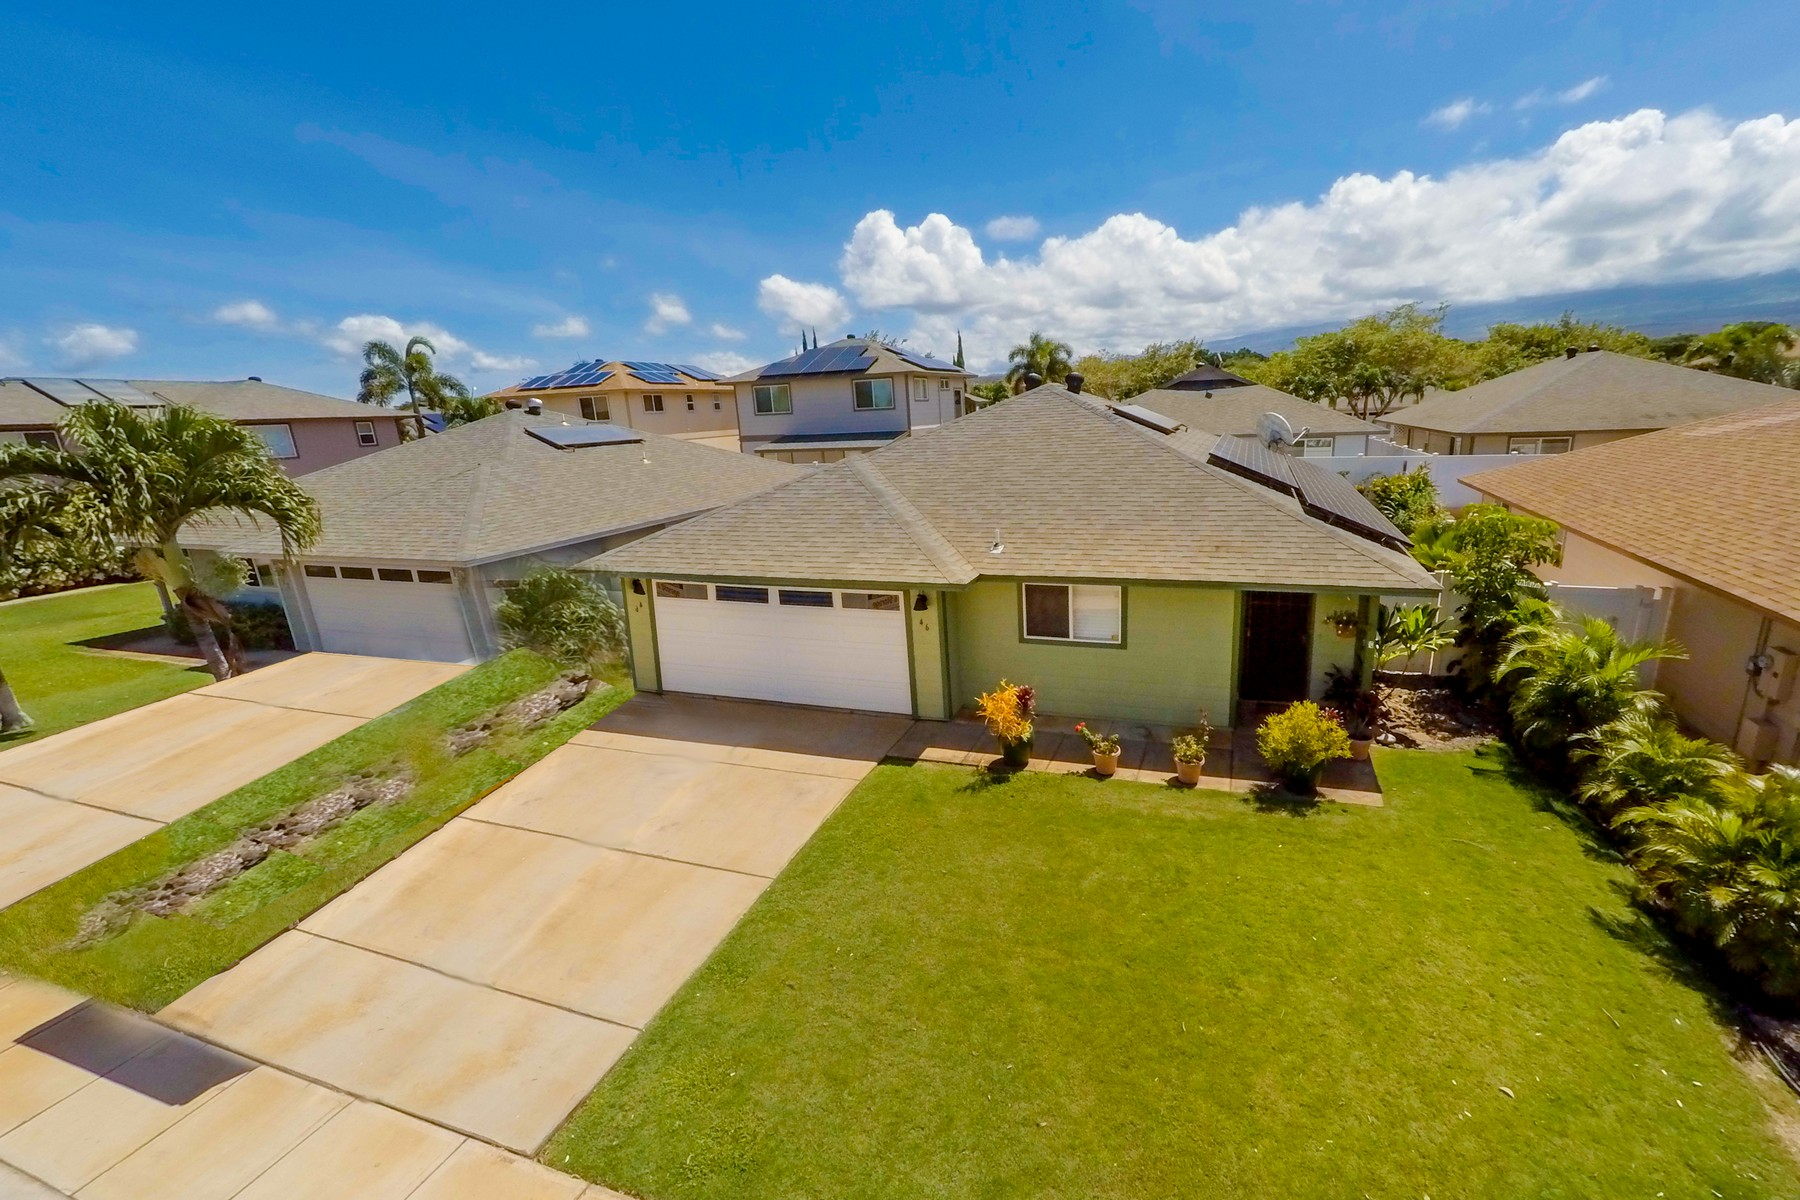 Single Family Home for Sale at Kihei market is HOT, but PV keeps this home COOL! 46 Noolu Street Kihei, Hawaii 96753 United States